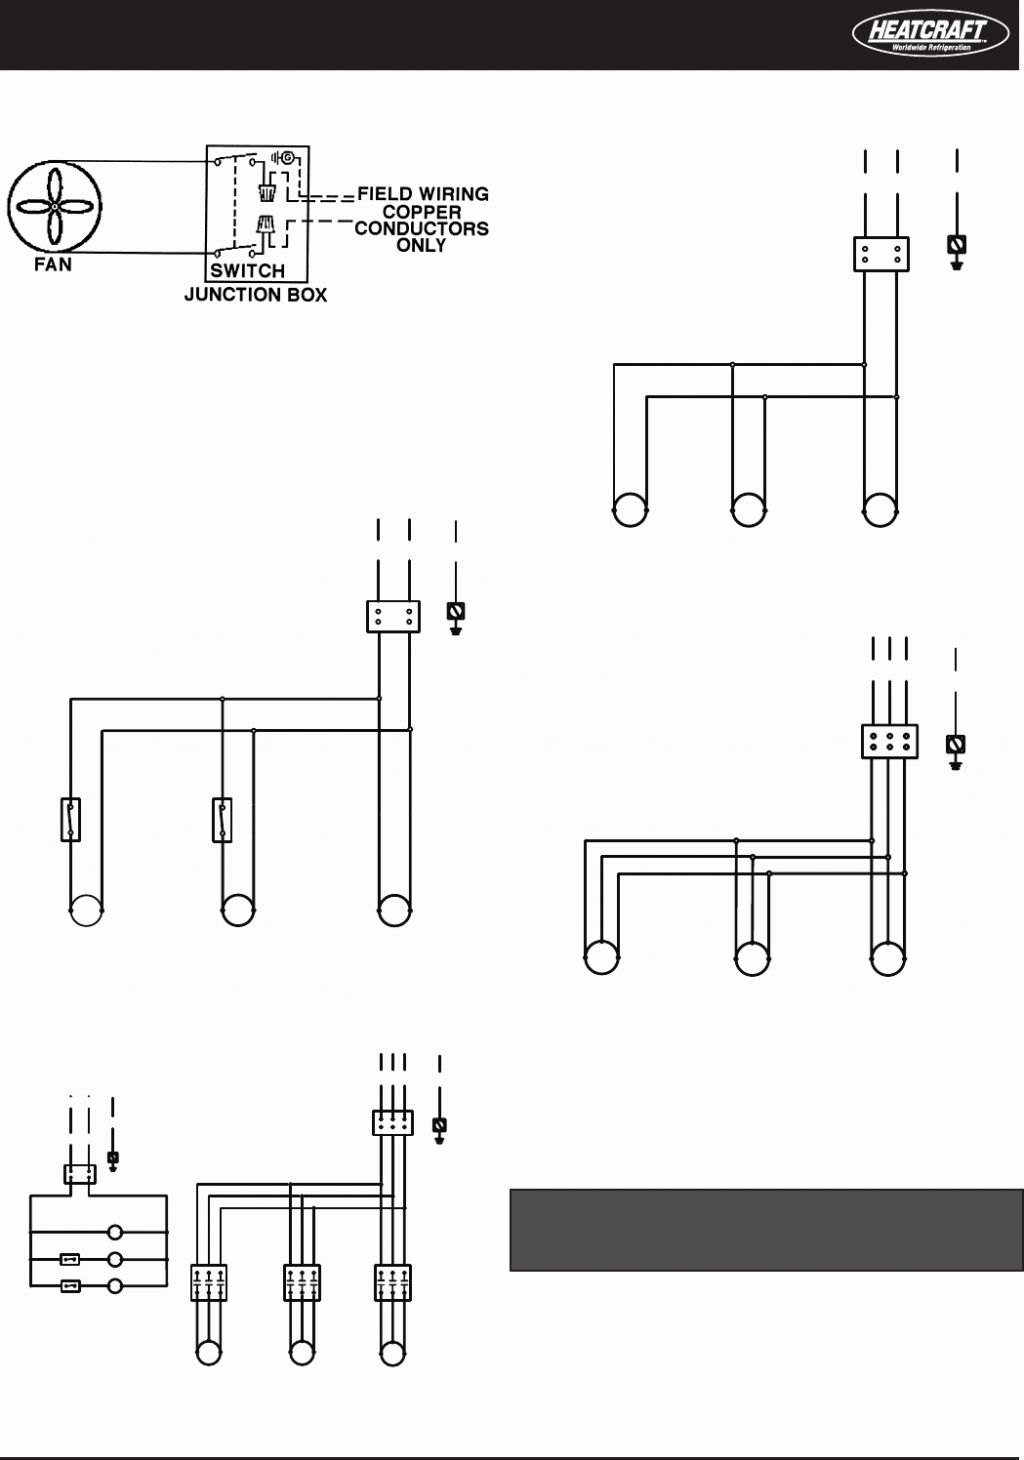 bohn walk in freezer wiring diagram bohn walk in freezer wiring diagram gallery | wiring ... basic walk in cooler wiring diagram #11